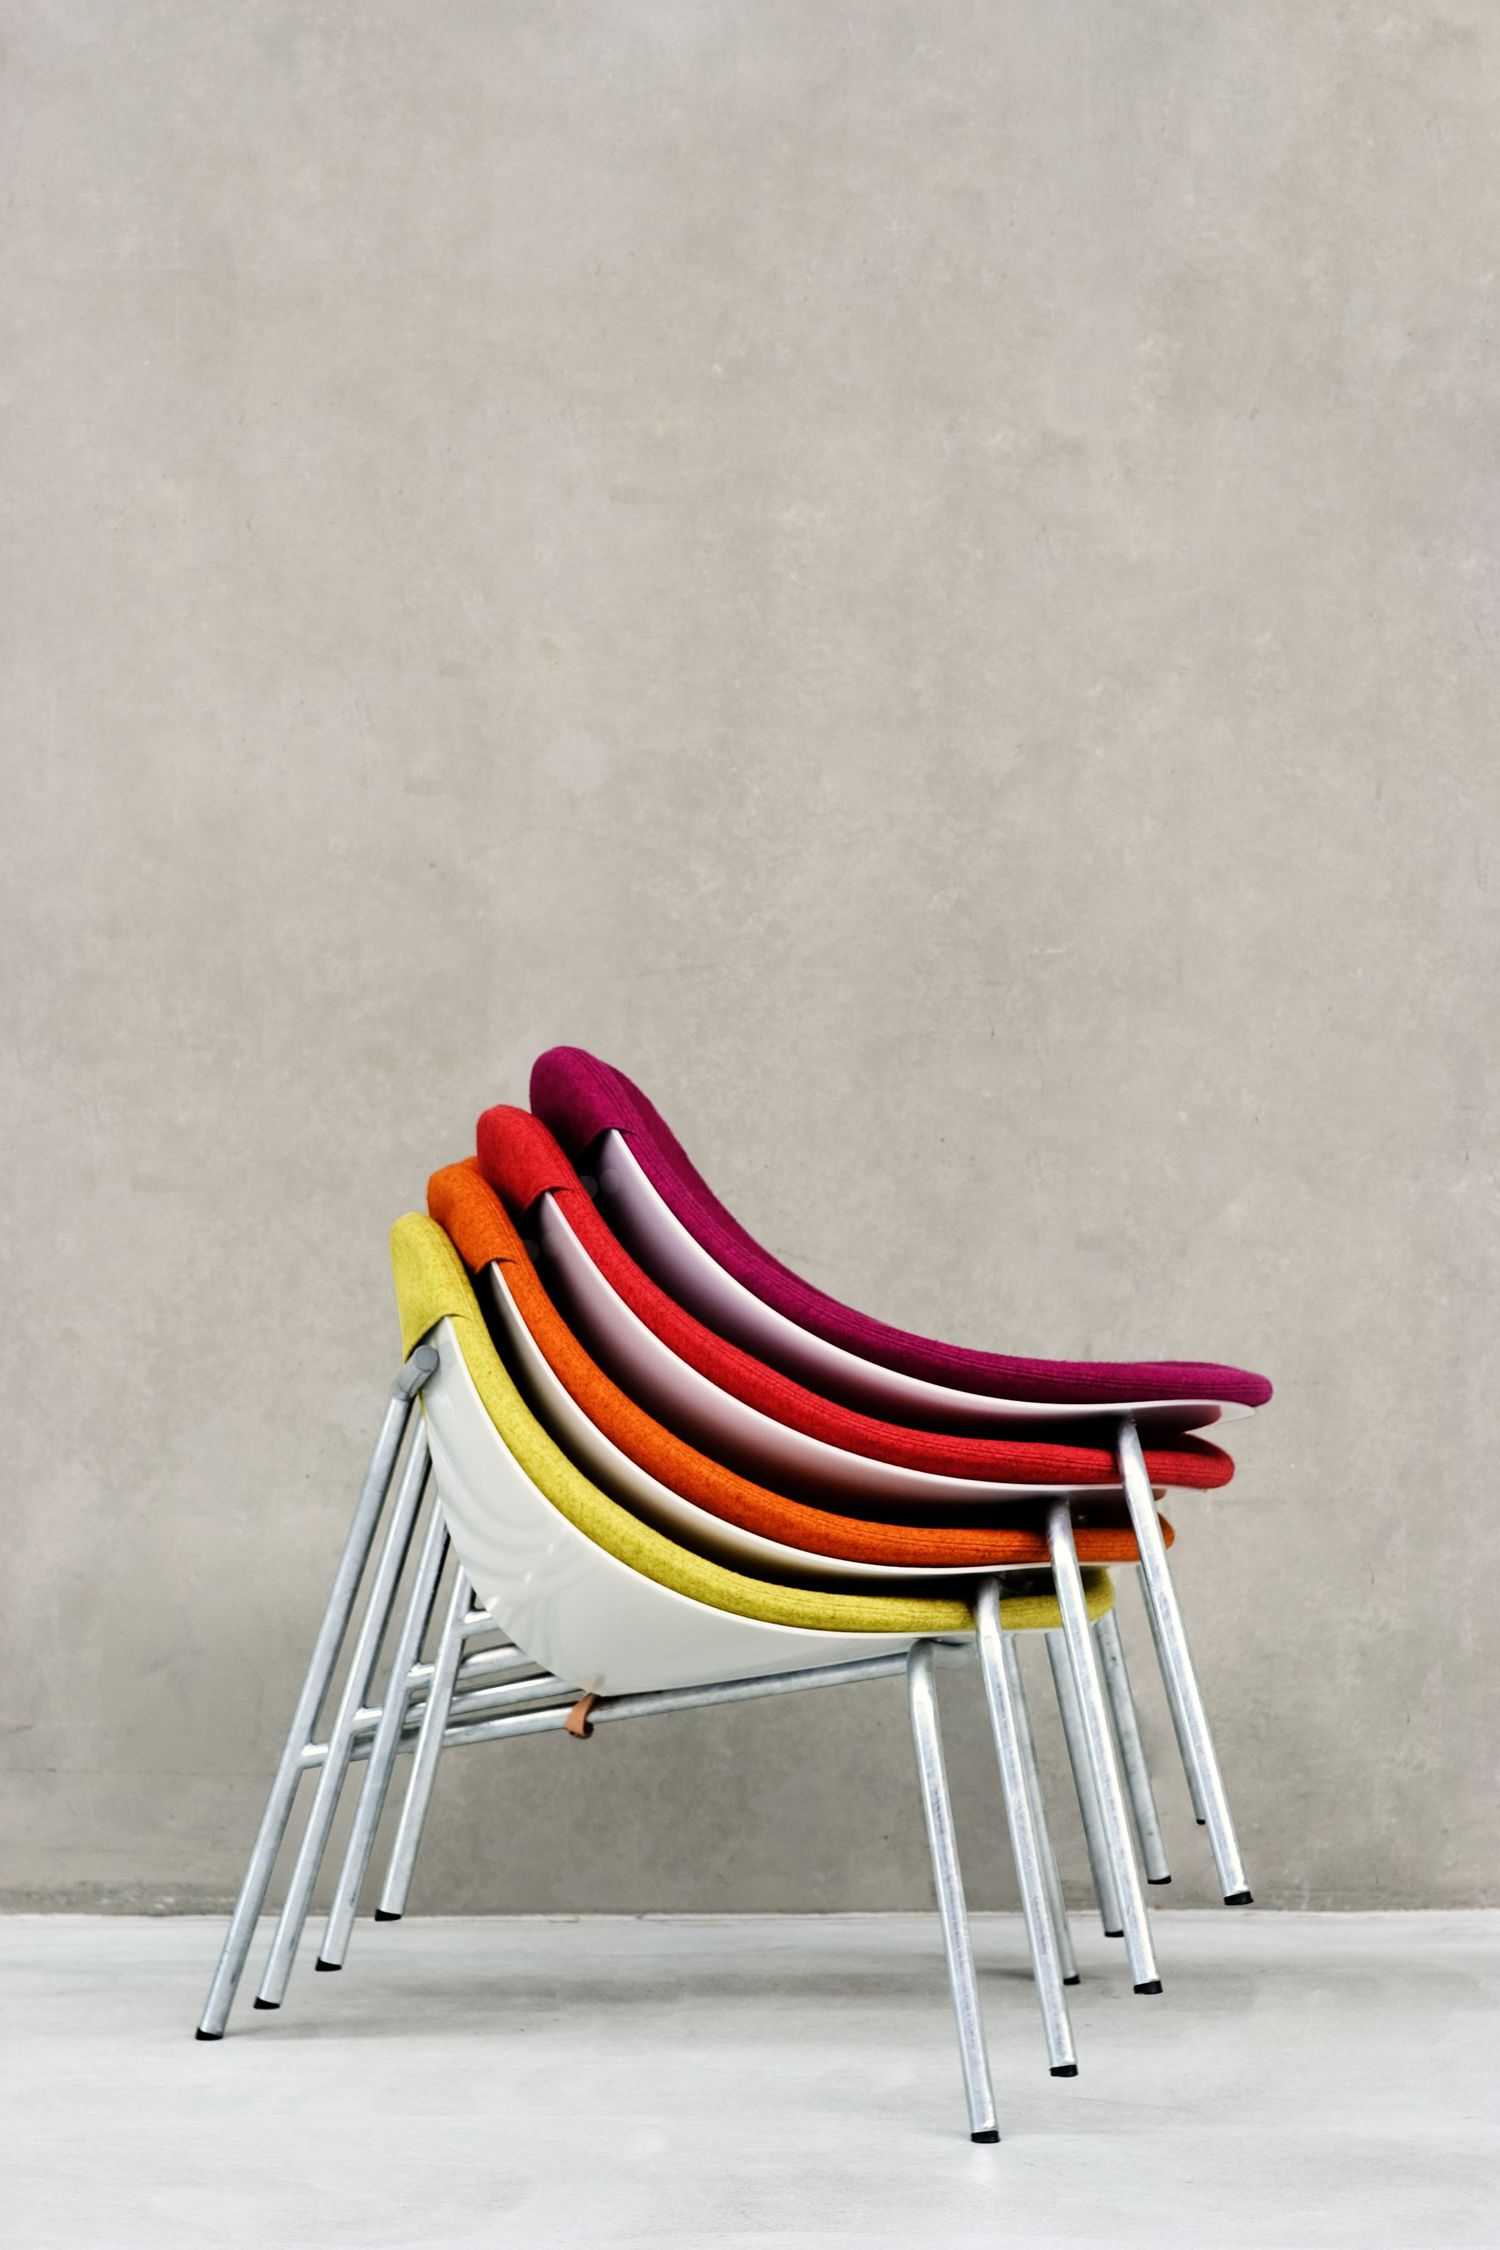 Wayfarer Stackable Lounge Chair From Hightower The